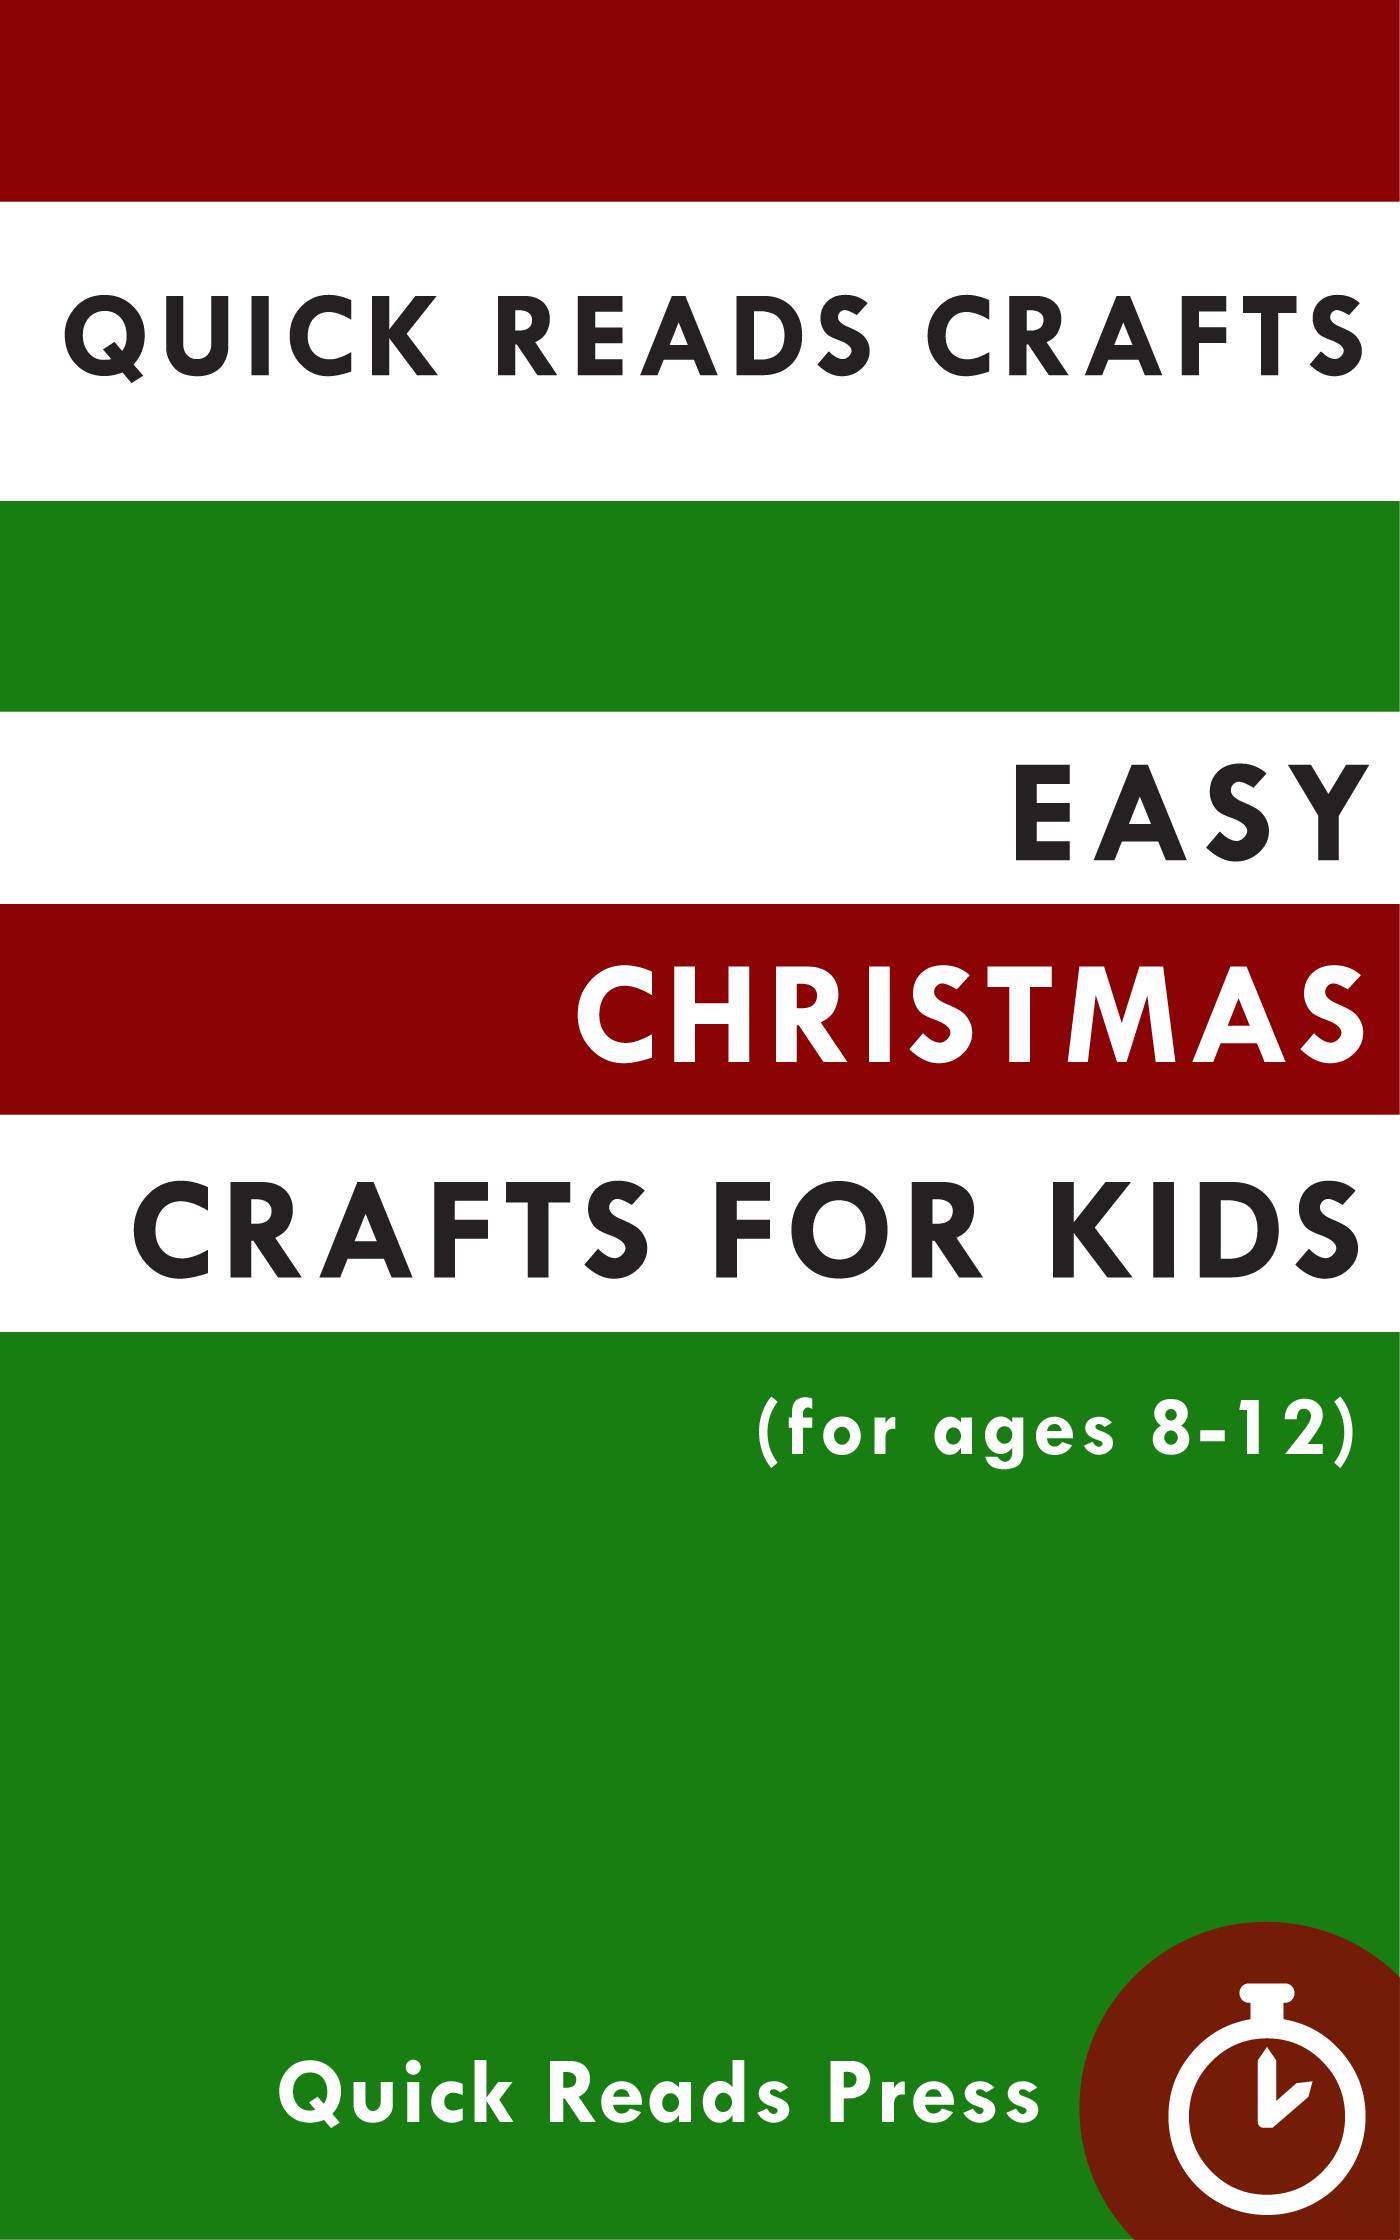 Quick Reads Crafts Easy Christmas For Kids Ages 8 12 By Press